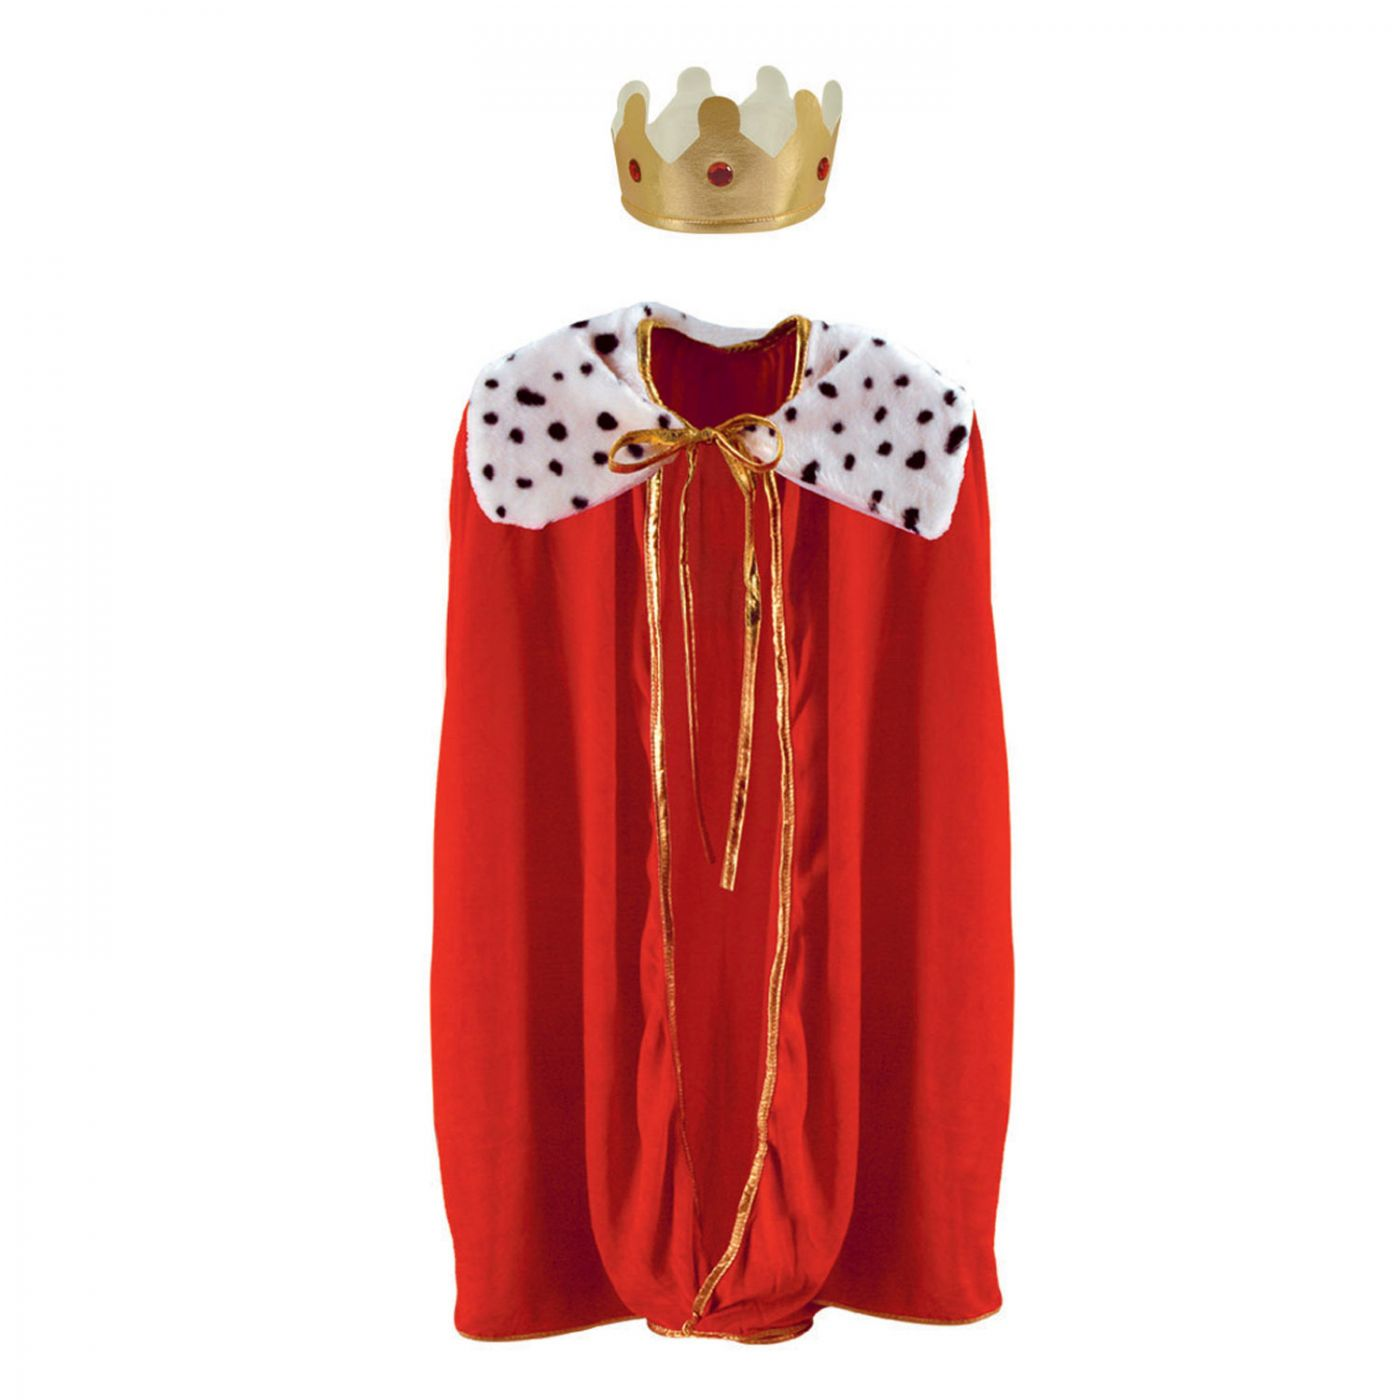 Image of Child King/Queen Robe w/Crown (1)